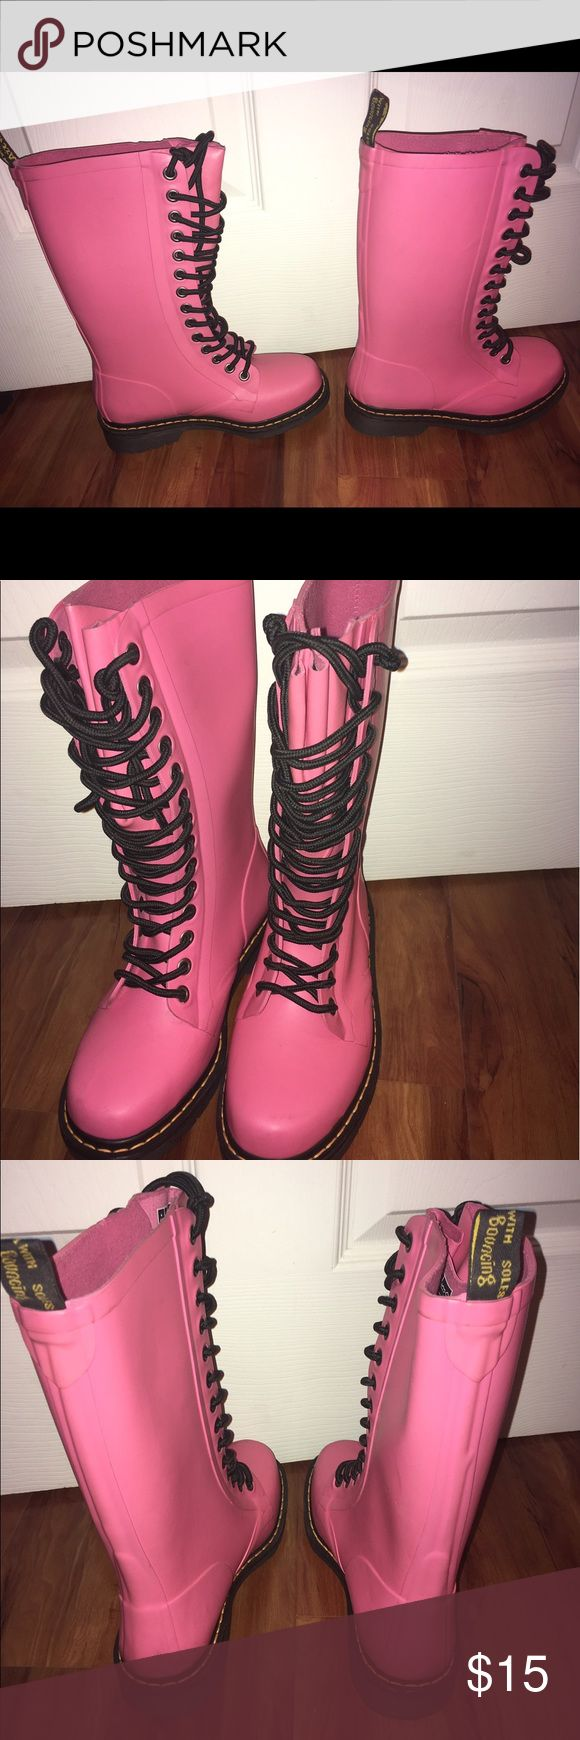 Doc Marten boots Rubber. Rain boot style. Bright pink. Size 6 fits up to 7. Never worn. Too tight for me. Lined. Chunky bottom. Doc Marten Shoes Winter & Rain Boots